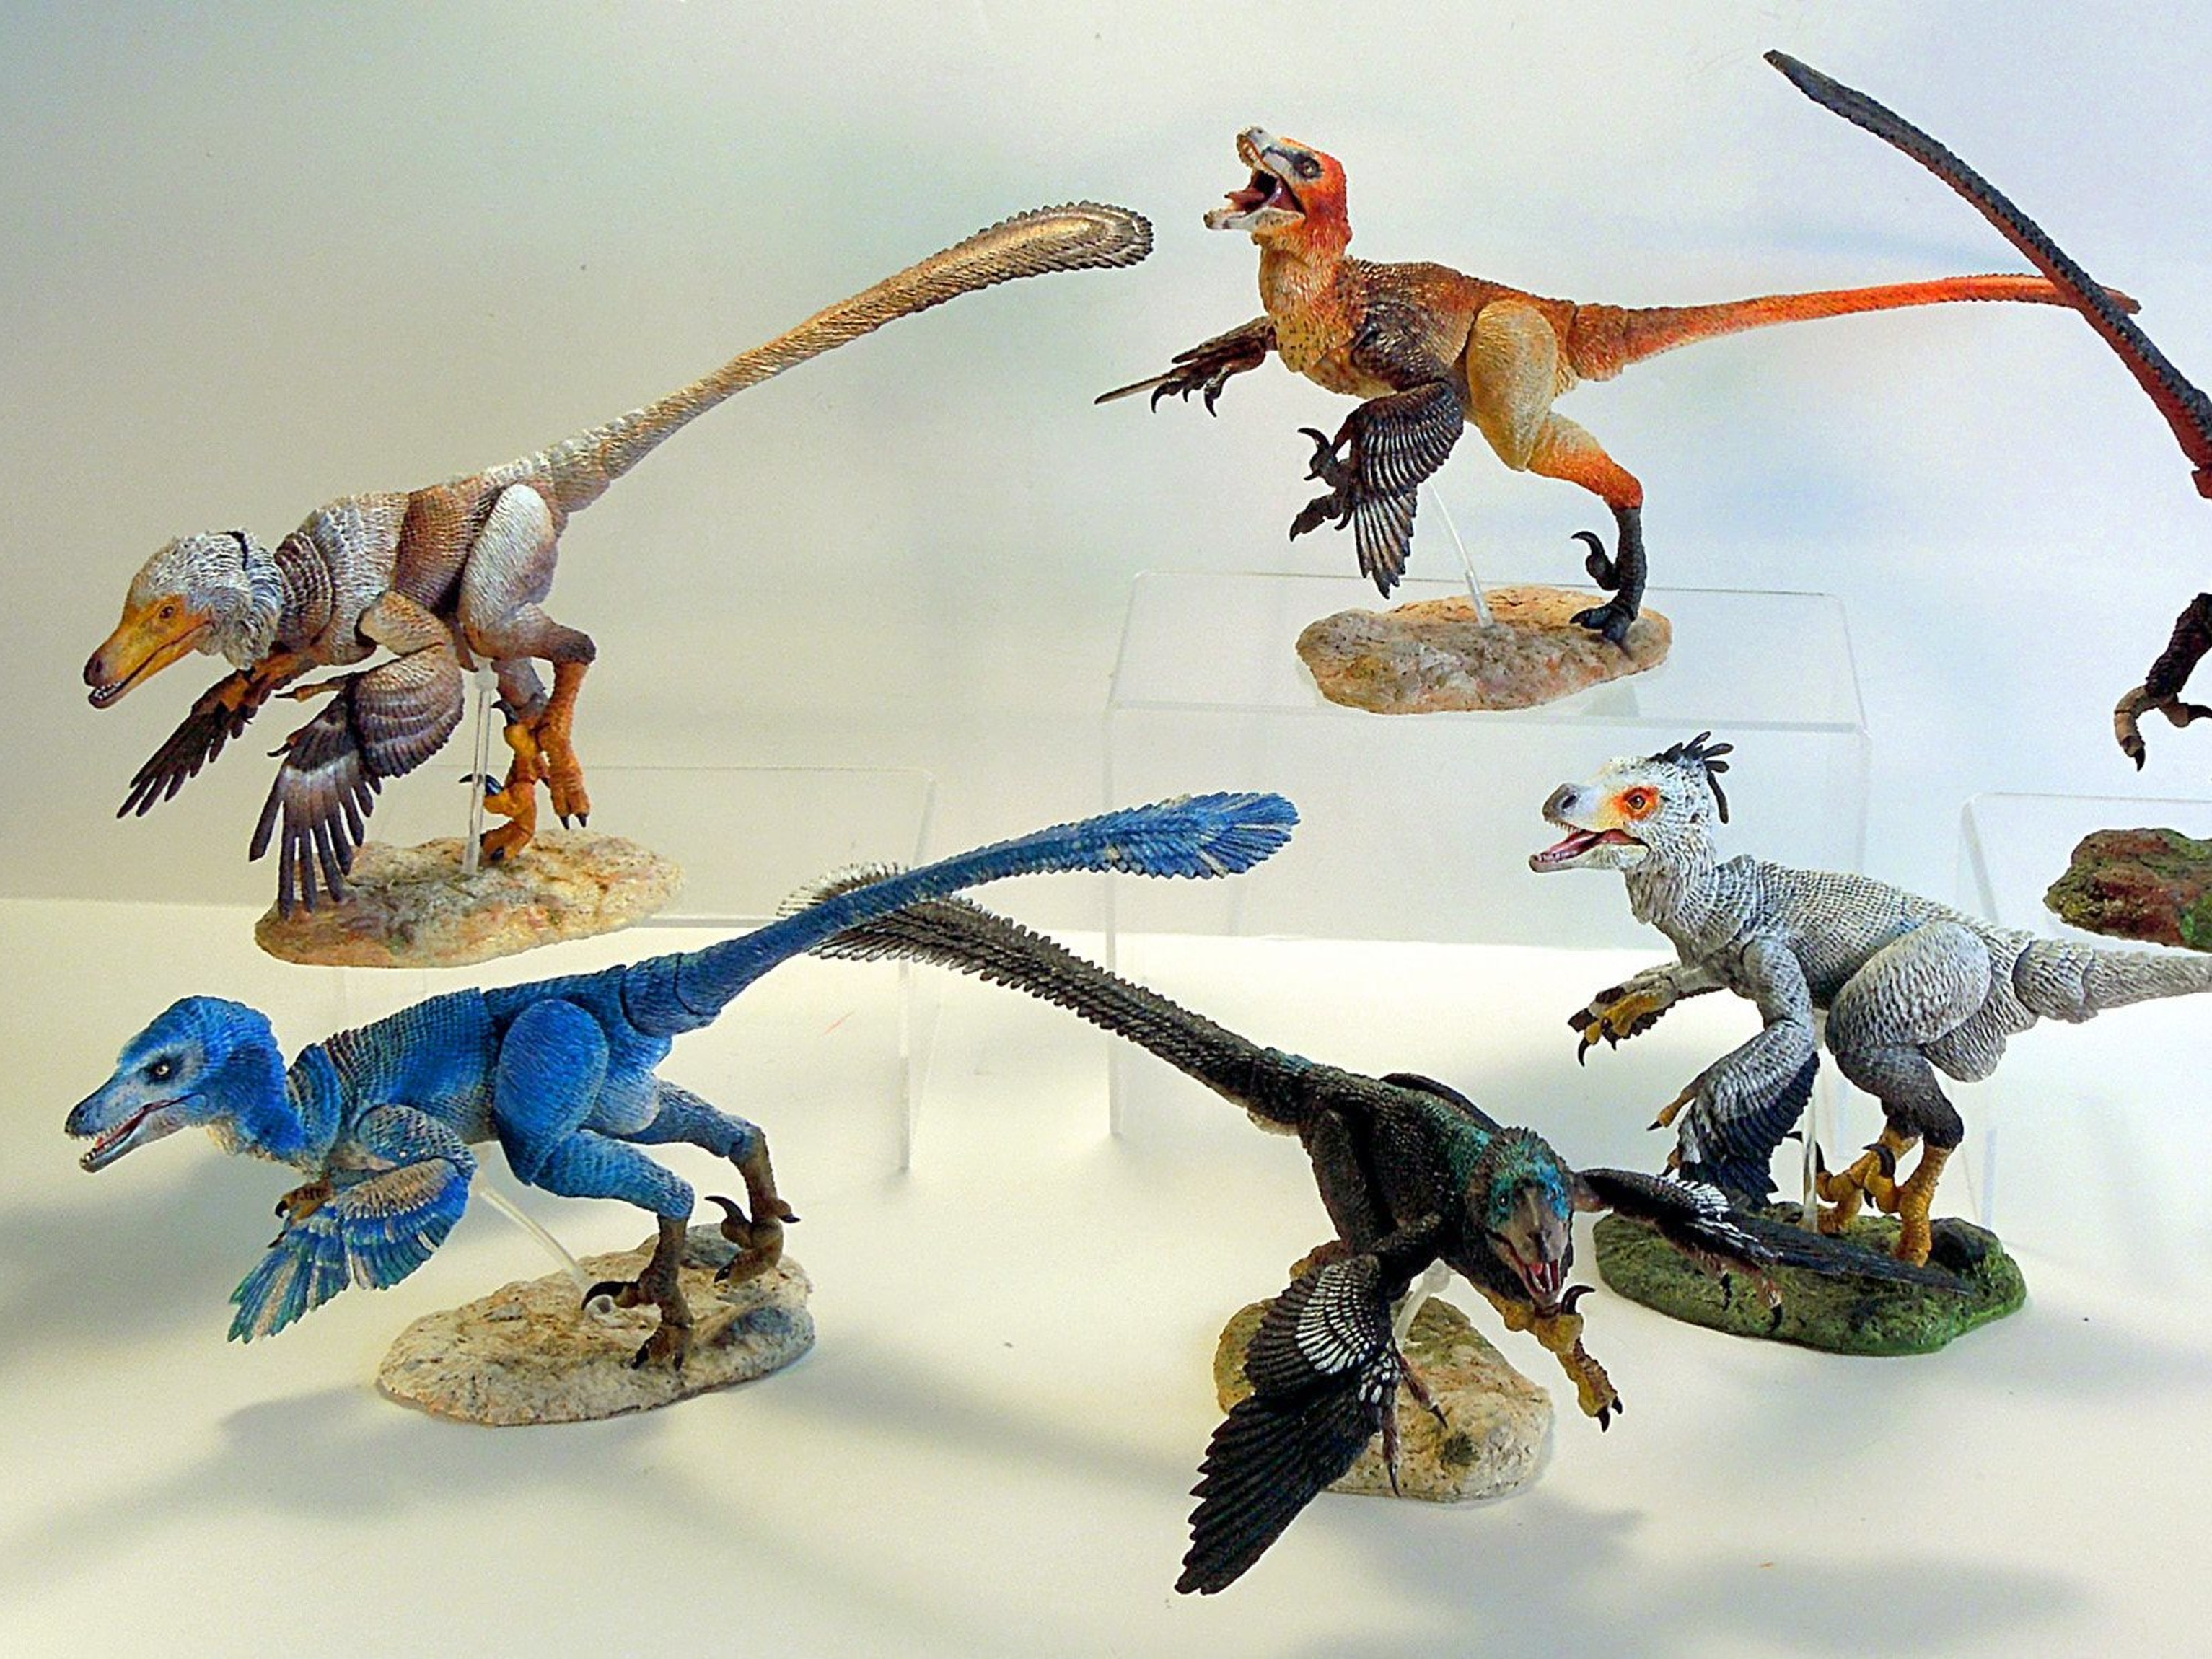 Toys For Grownups : Dinosaur toys for adults are just the best inverse